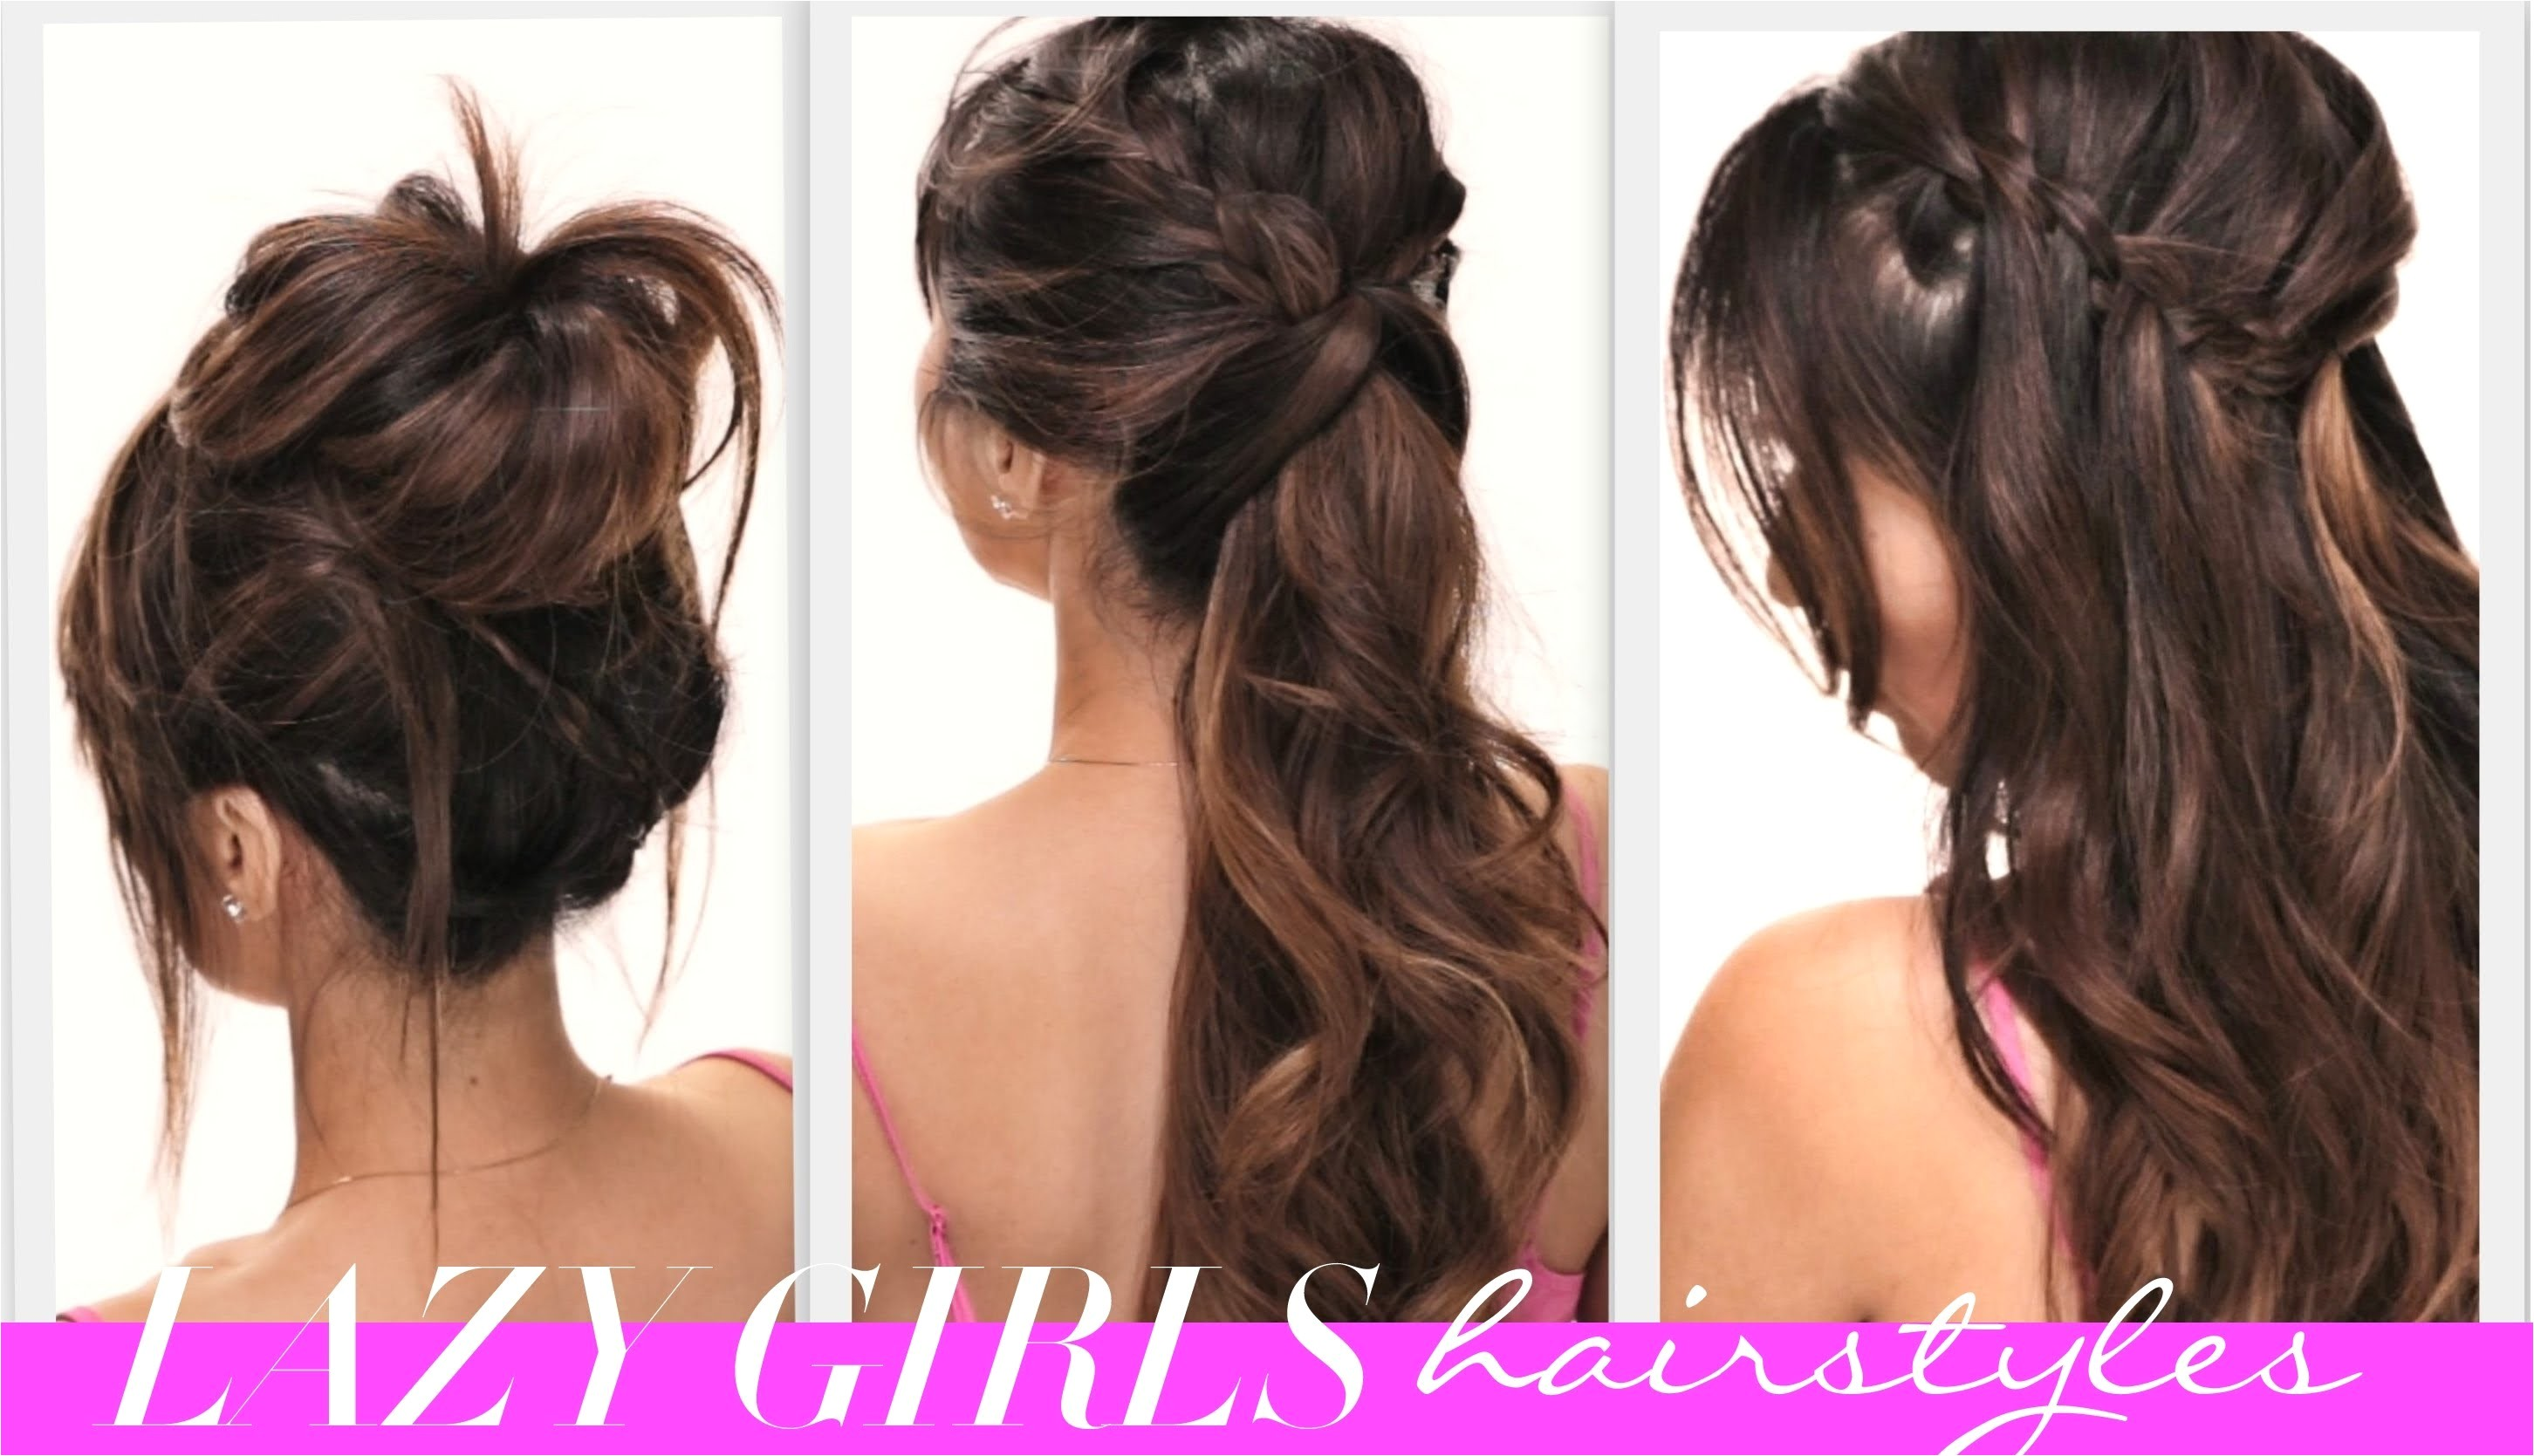 simple hairstyle for girls at home ideas